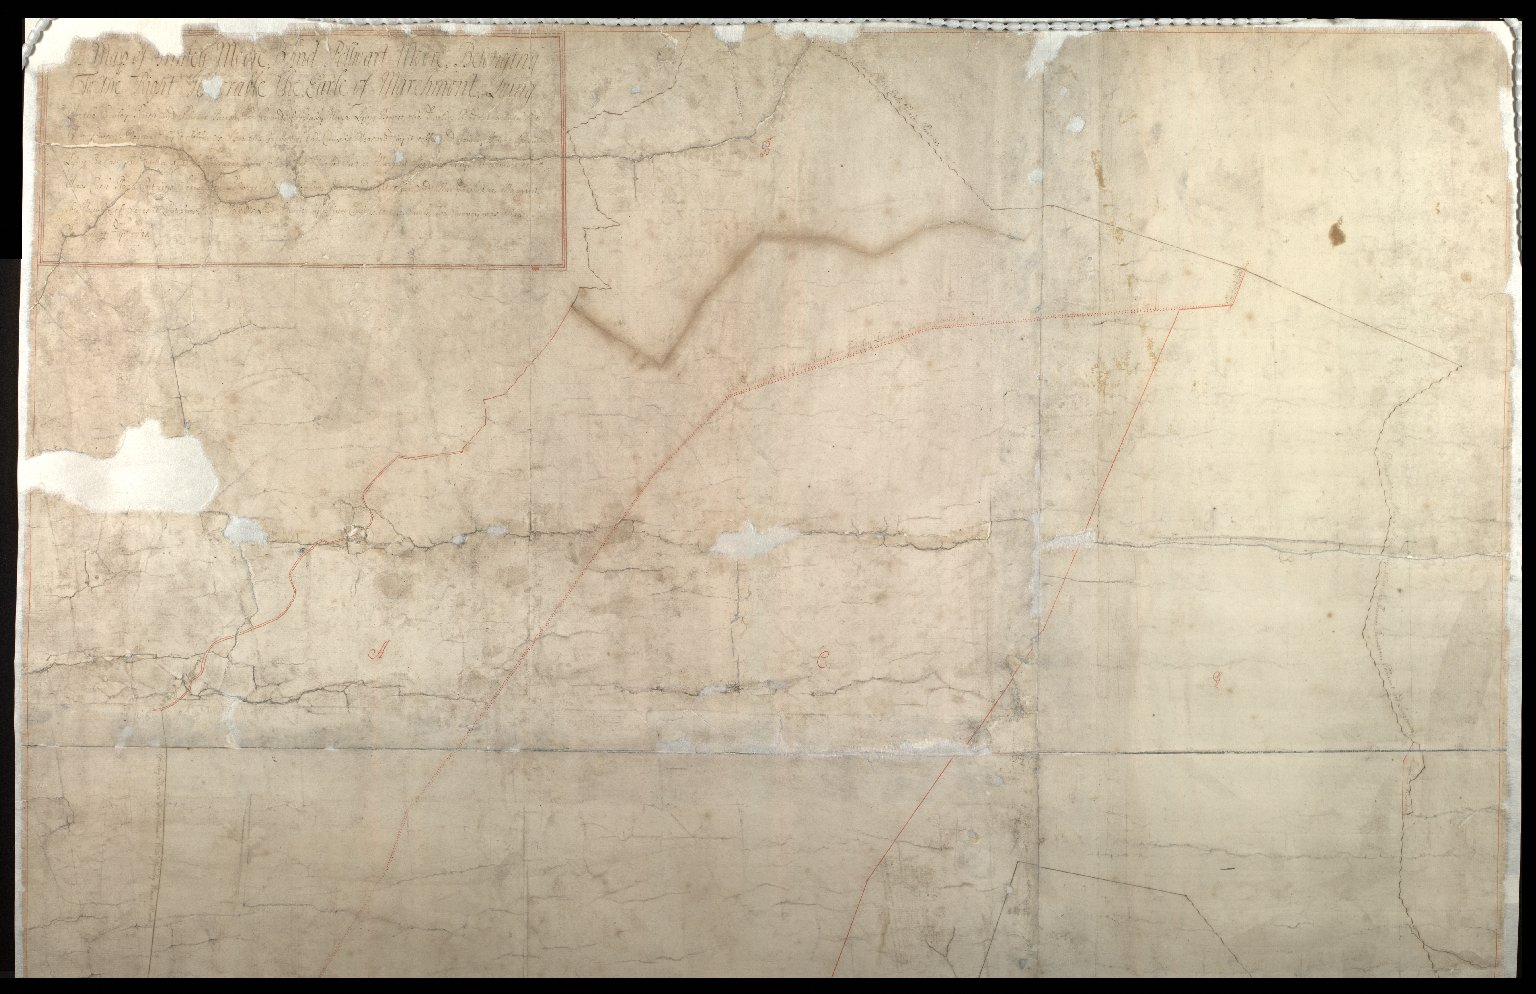 A Map of Grinley Moore And Pollwart Moore Belonging to The Right Honorable the Earle of Marchmont [1 of 2]